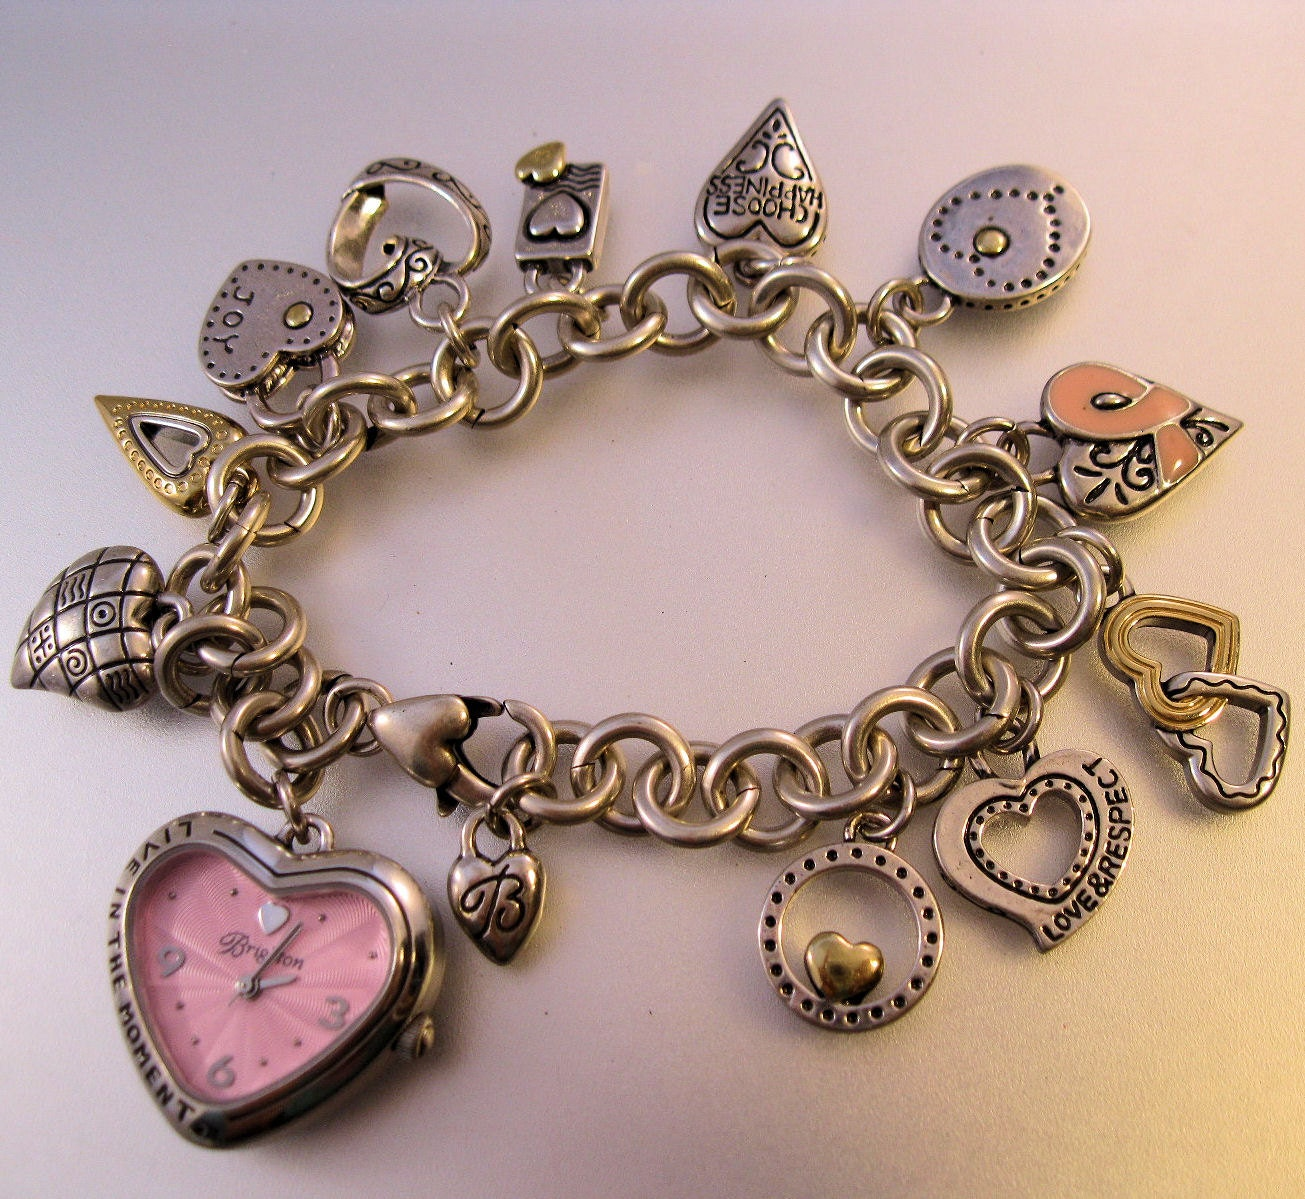 Charm Bracelet Watches: BRIGHTON Charm Bracelet Watch Breast Cancer Awareness